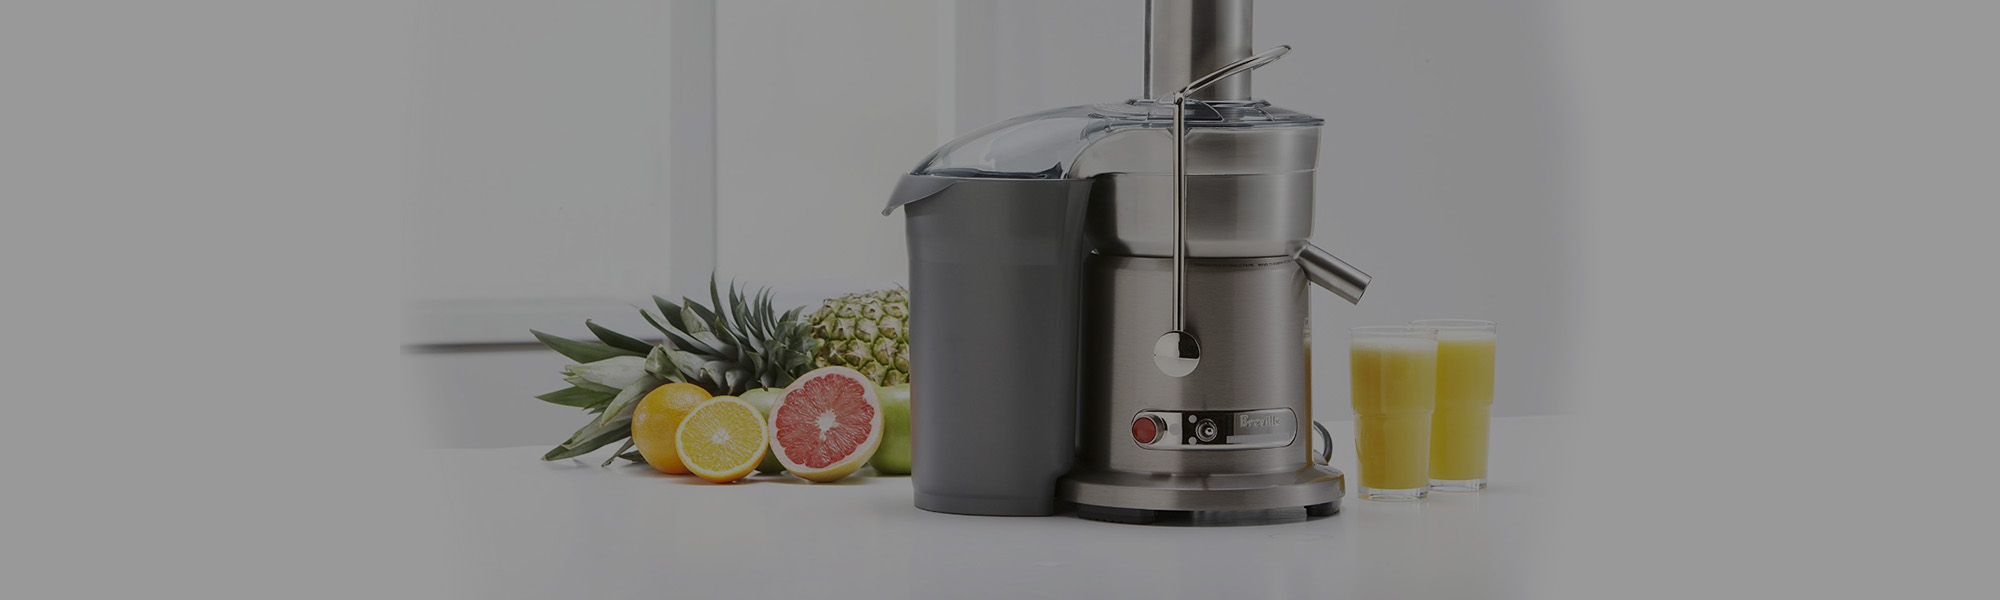 Breville Juice Fountain Plus<br>850 Watt Juice Extractor